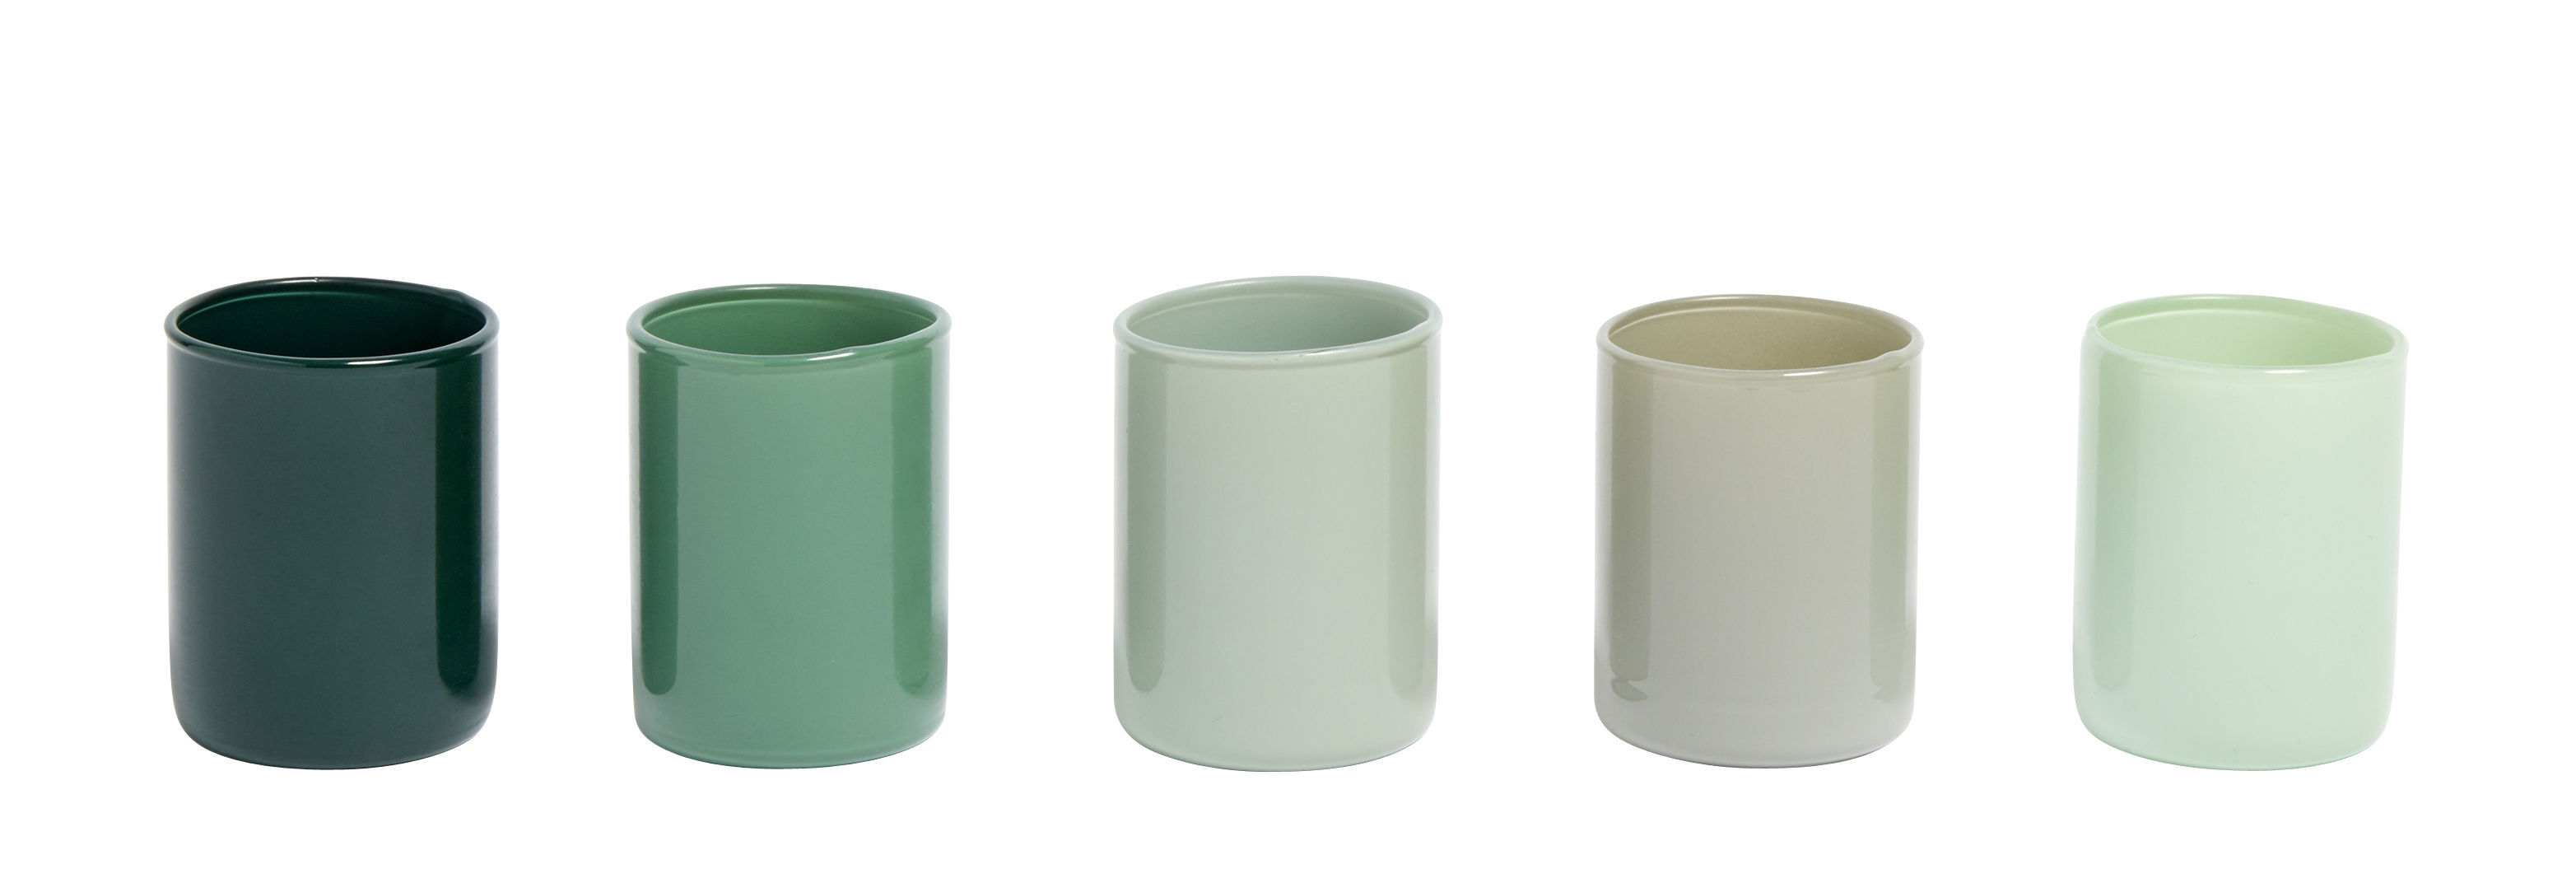 Decoration - Candles & Candle Holders - Spot Candle holder - / Set 5 - Glass by Hay - Green - Glass